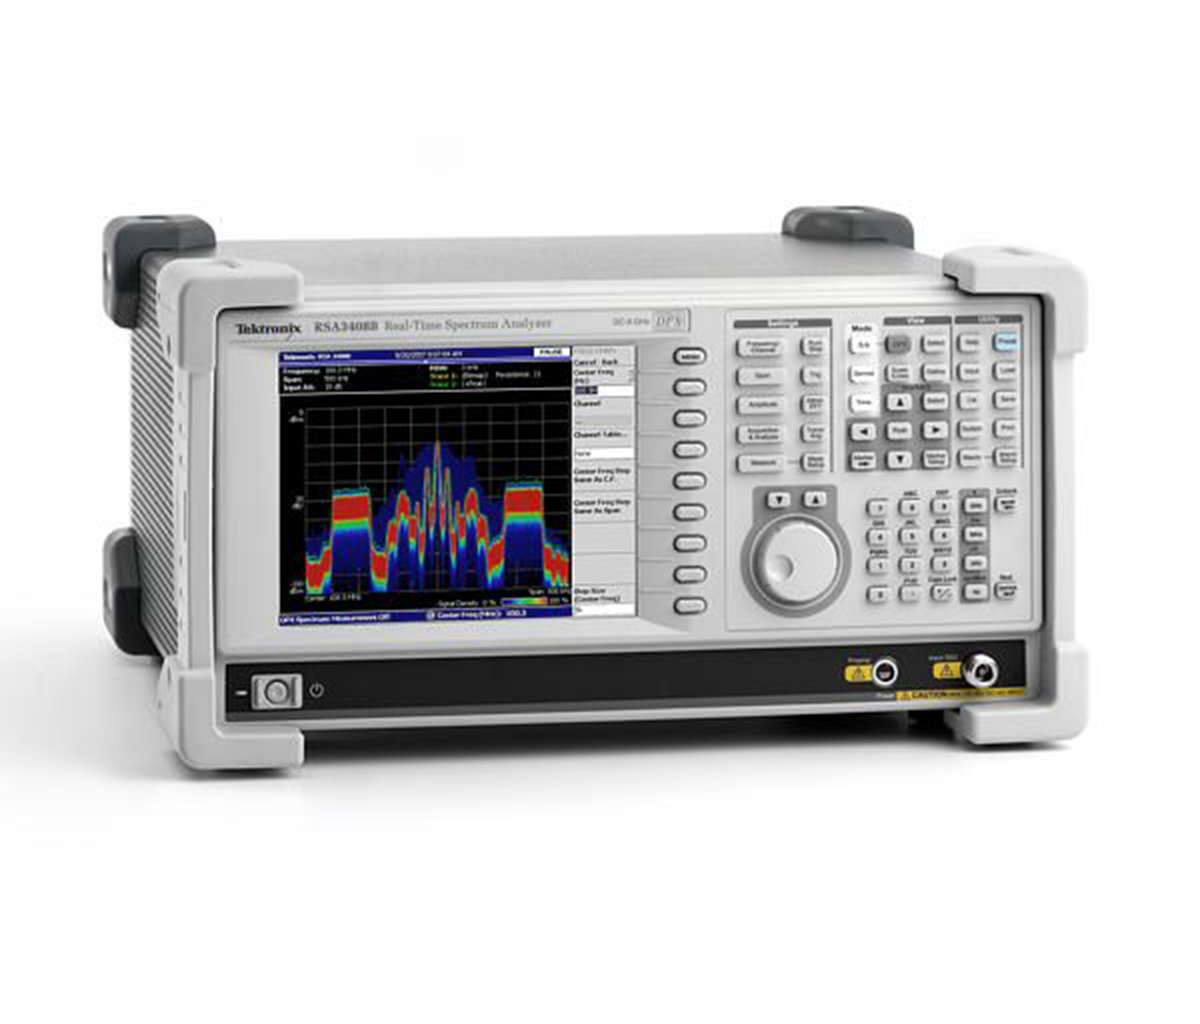 Tektronix - RSA3408B-SPECIAL 8GHz Real-Time Spectrum Analyzer